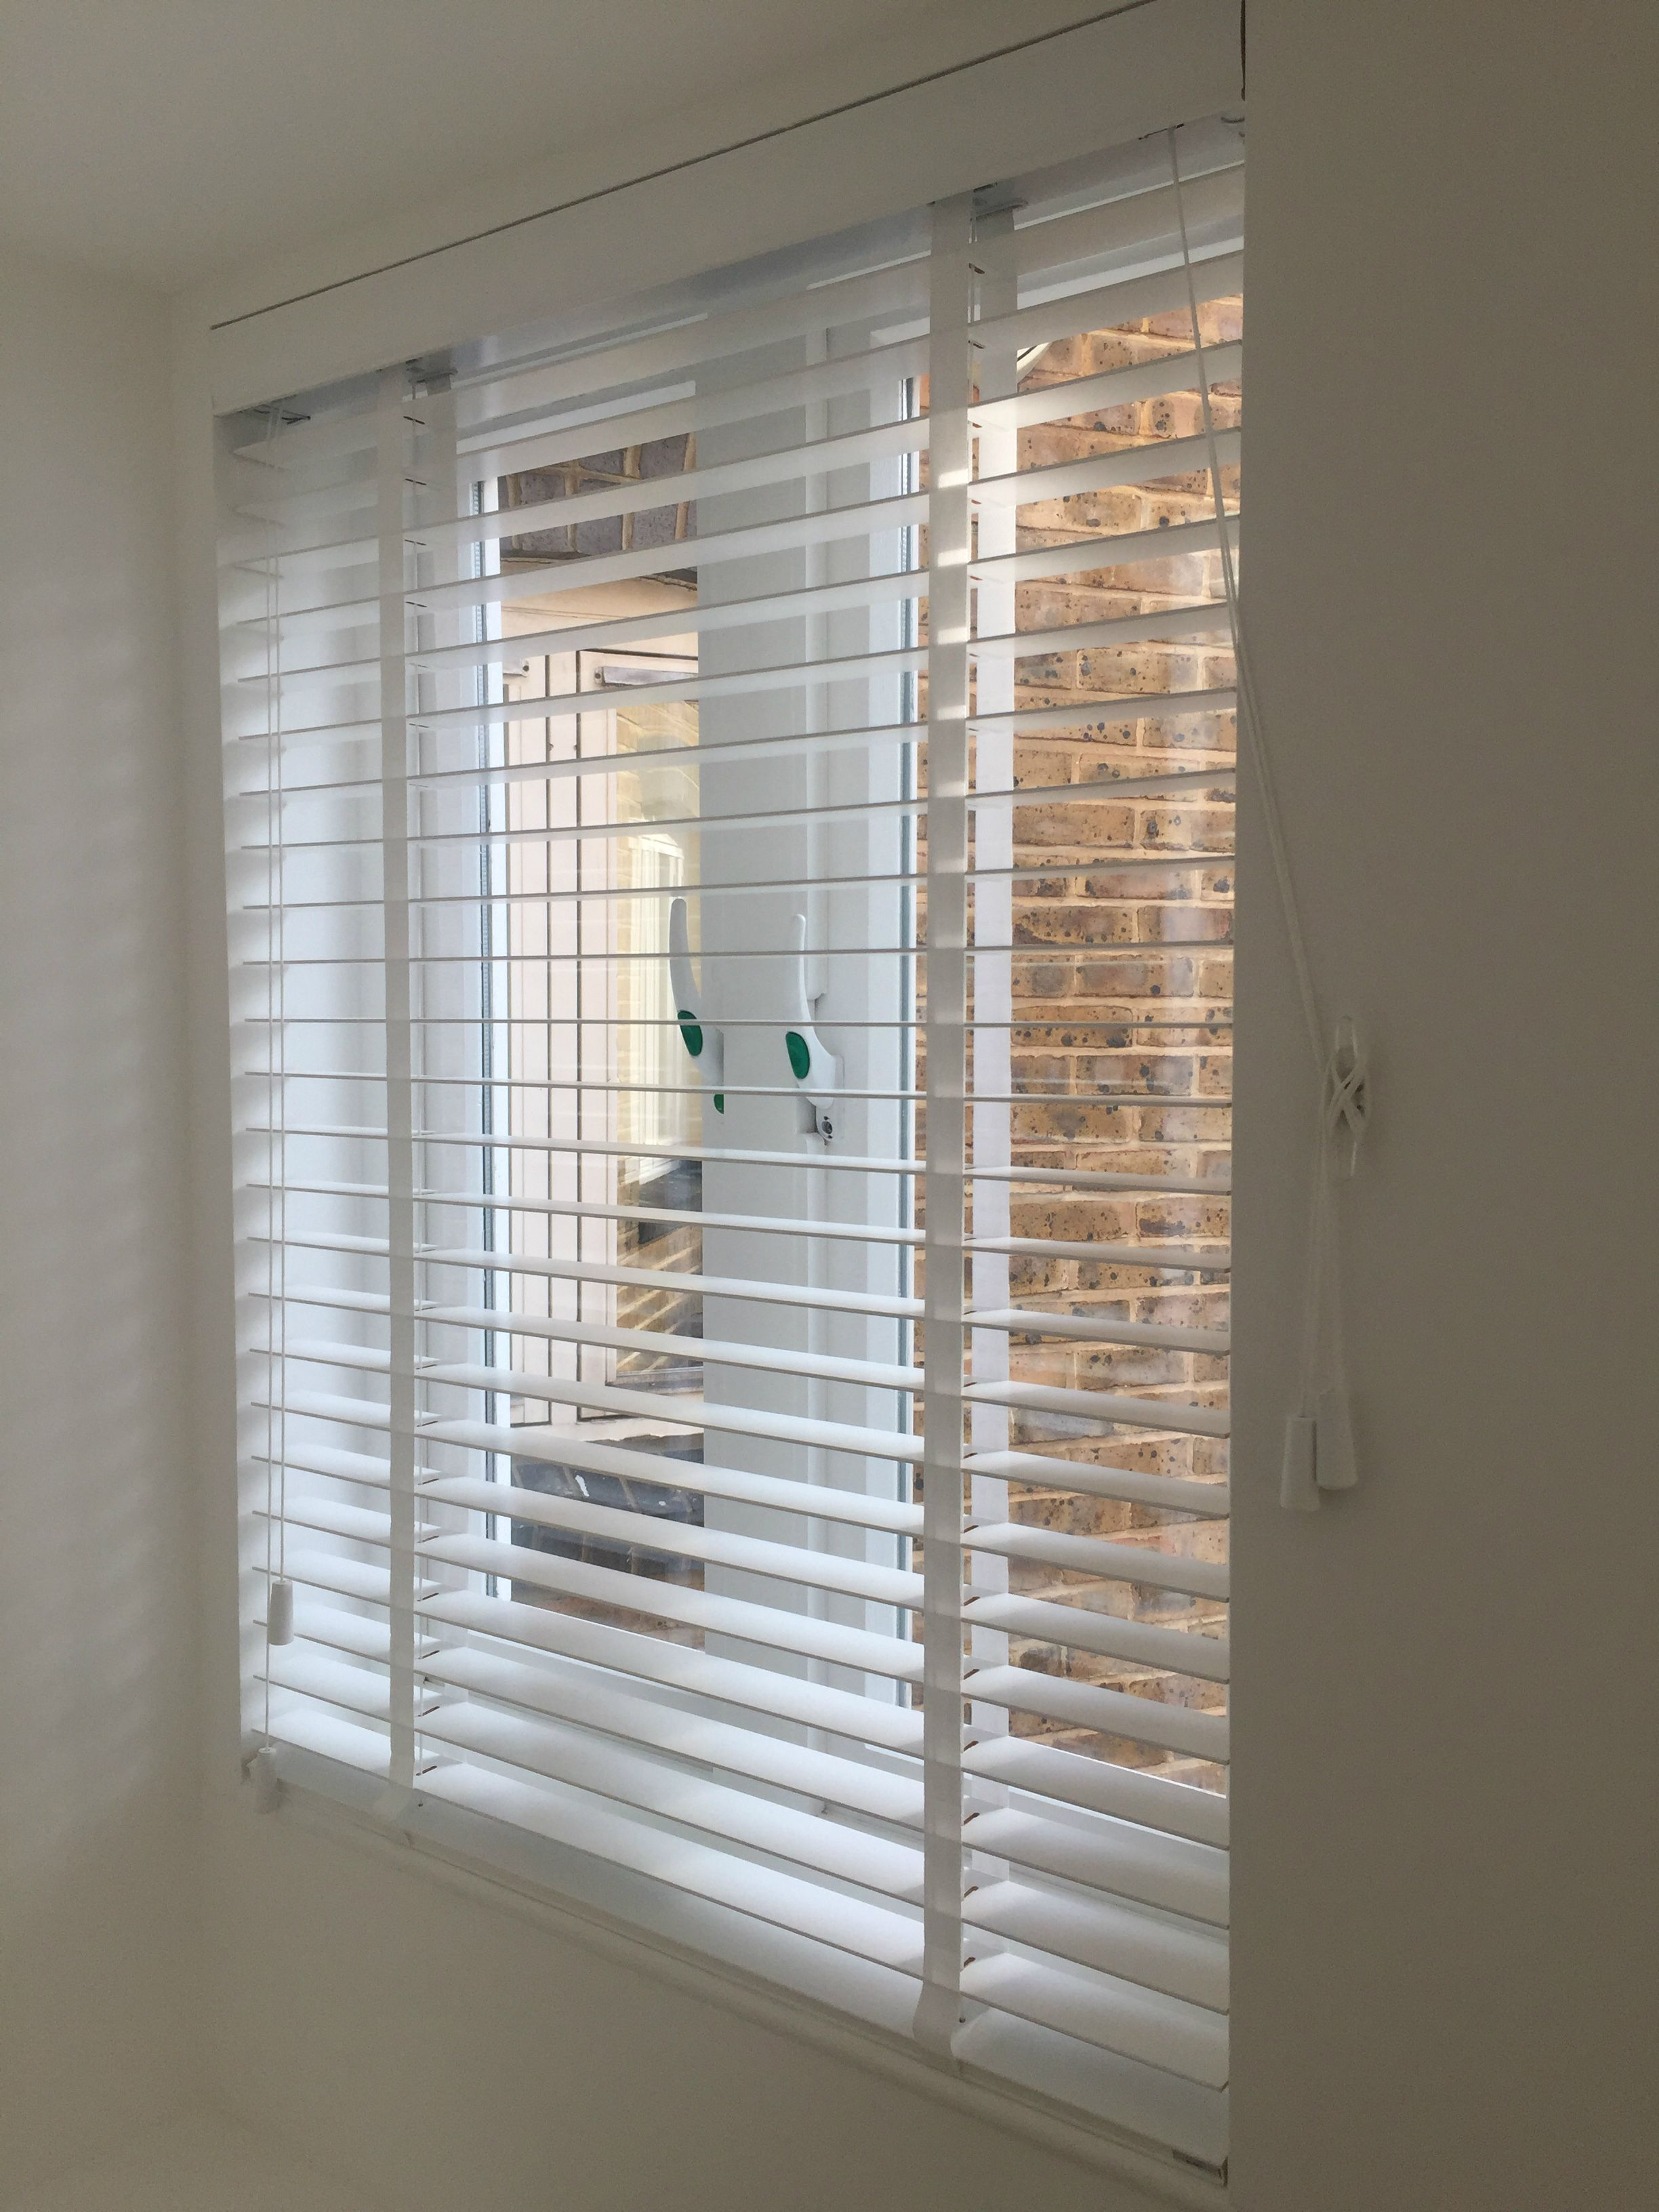 Pure White Wood Venetian Blind With Tapes Installed For Bedroom Window Bayswater London Made To Measure C Blinds Made To Measure Blinds Room Accessories